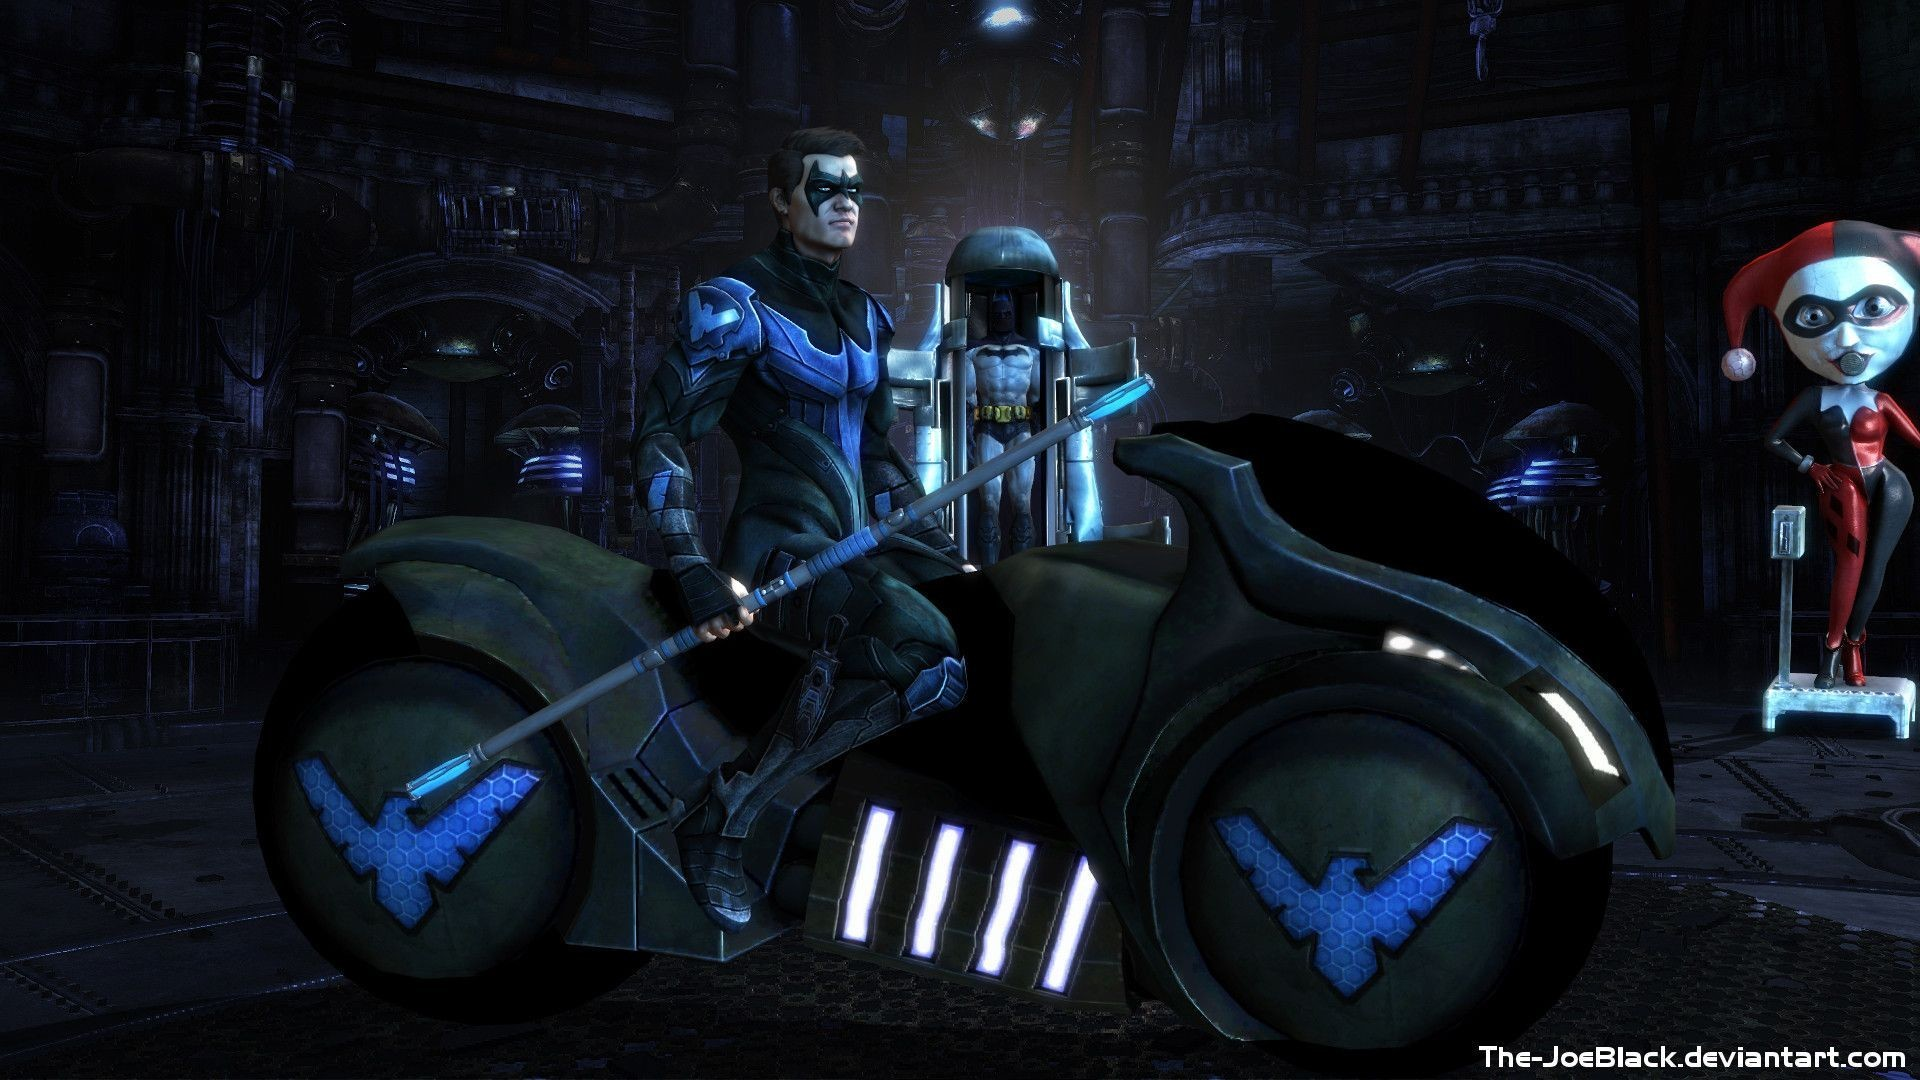 1920x1080 Blue Nightwing Wallpapers High Quality Resolution